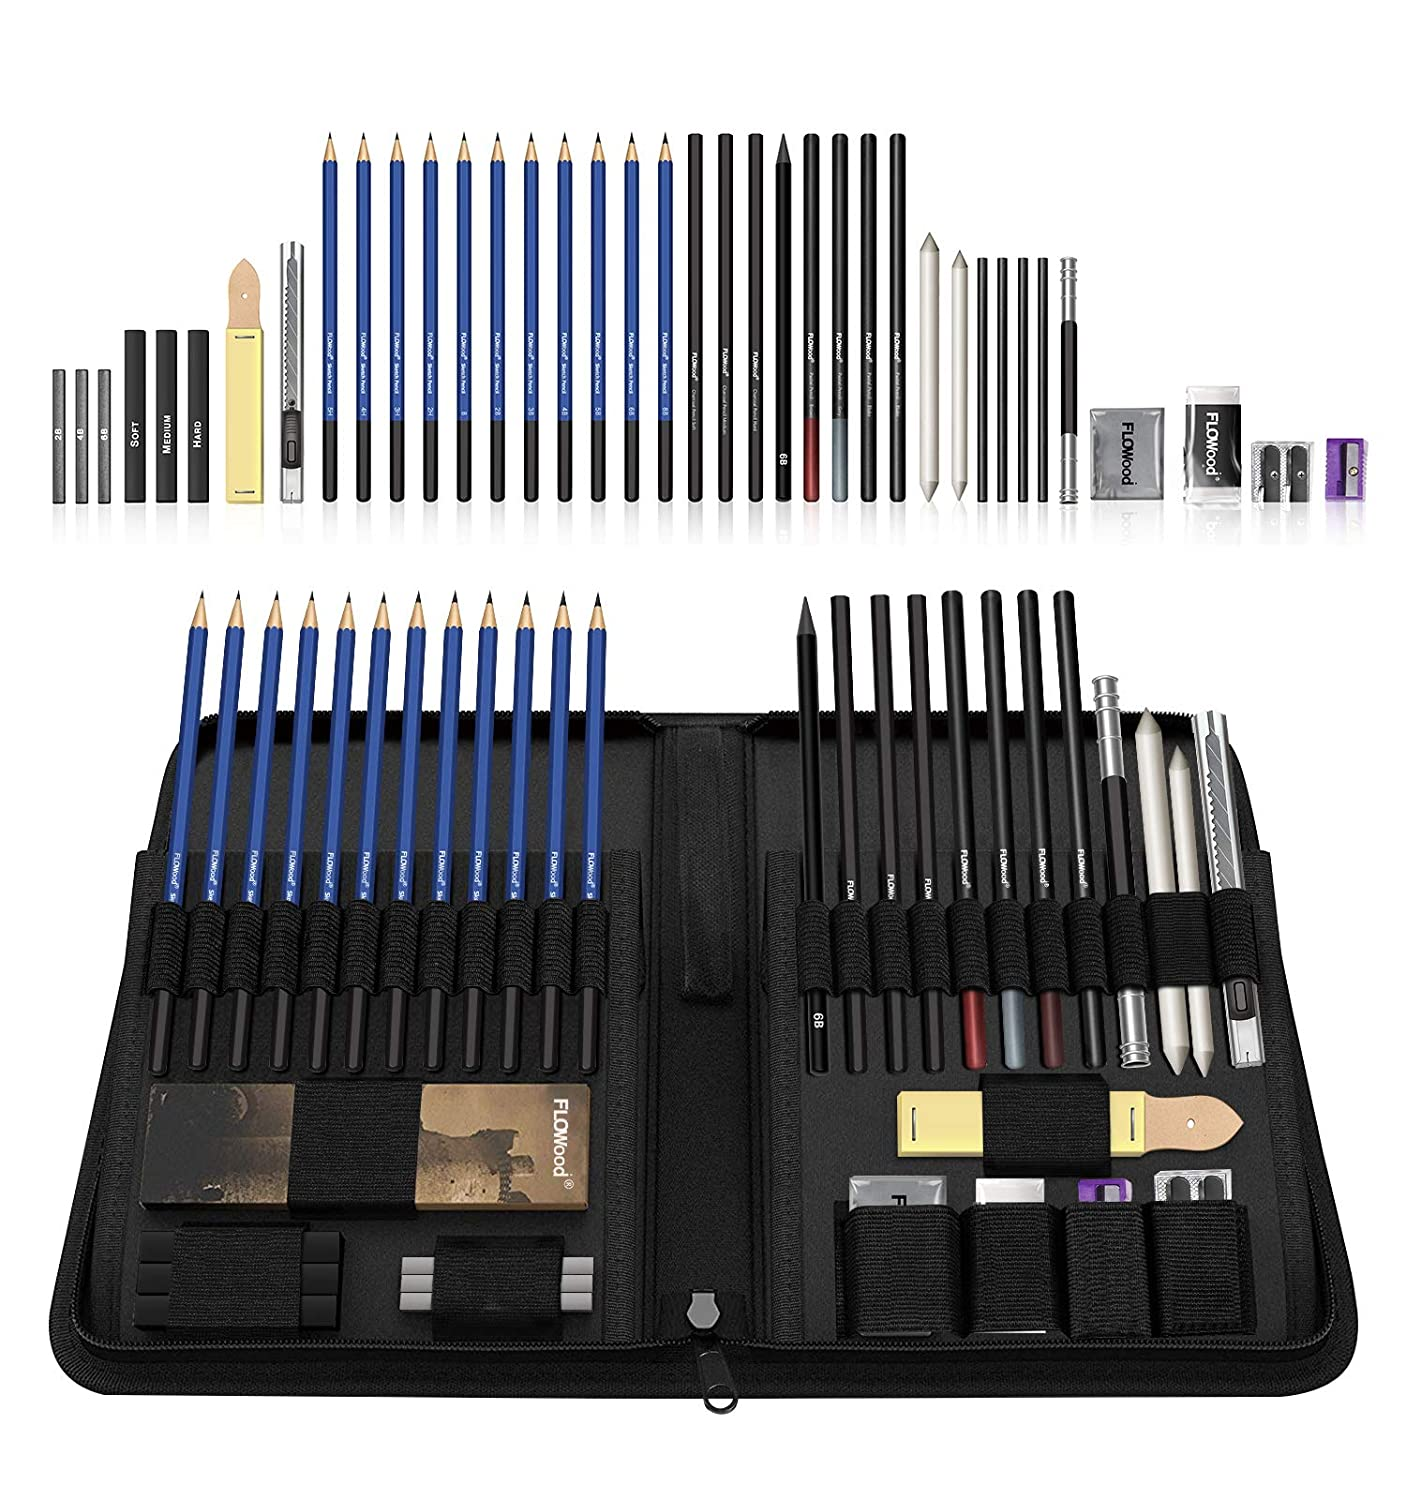 Flowood 40 Piece Professional Art Kit Drawing and Sketching Pencil Set with Eraser,Pastels,Graphite and Charcoal Sticks Art Supplies